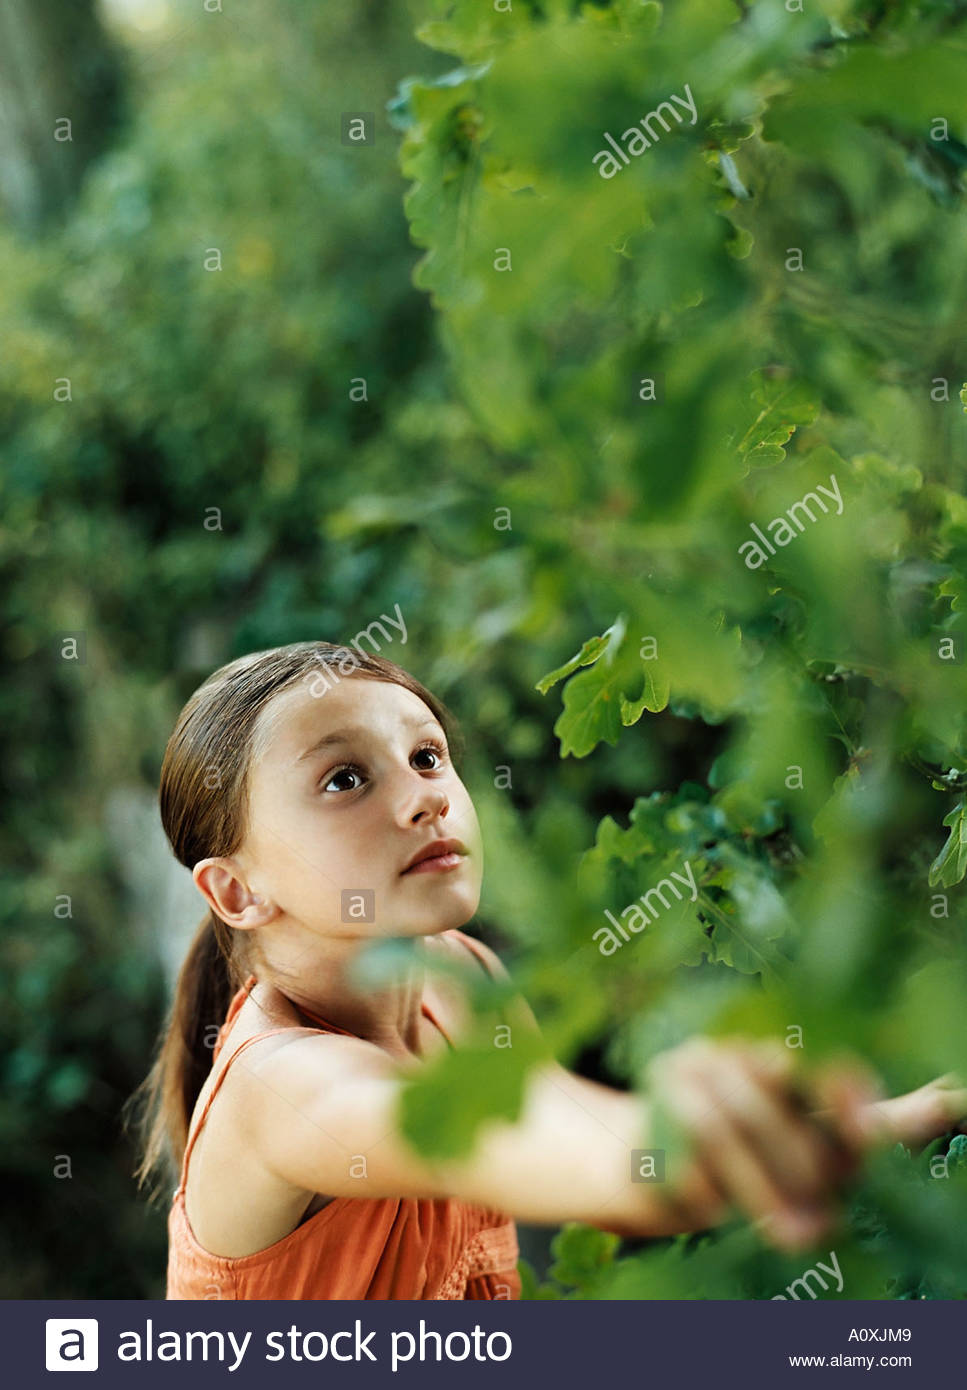 Girl looking at plant Photo Stock